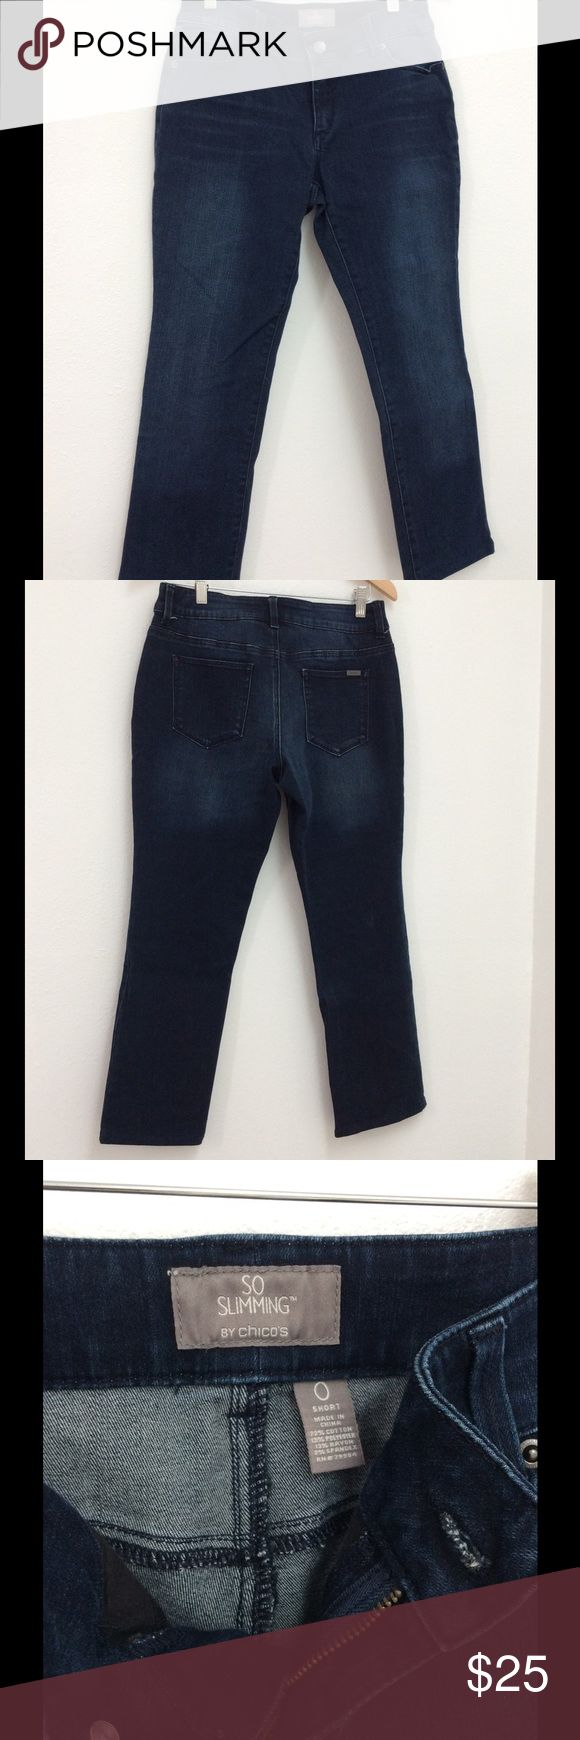 Women Chico's So Slimming Ankle Jeans Size 0 Used but still has life left. Stretchable. Chico's Jeans Ankle & Cropped